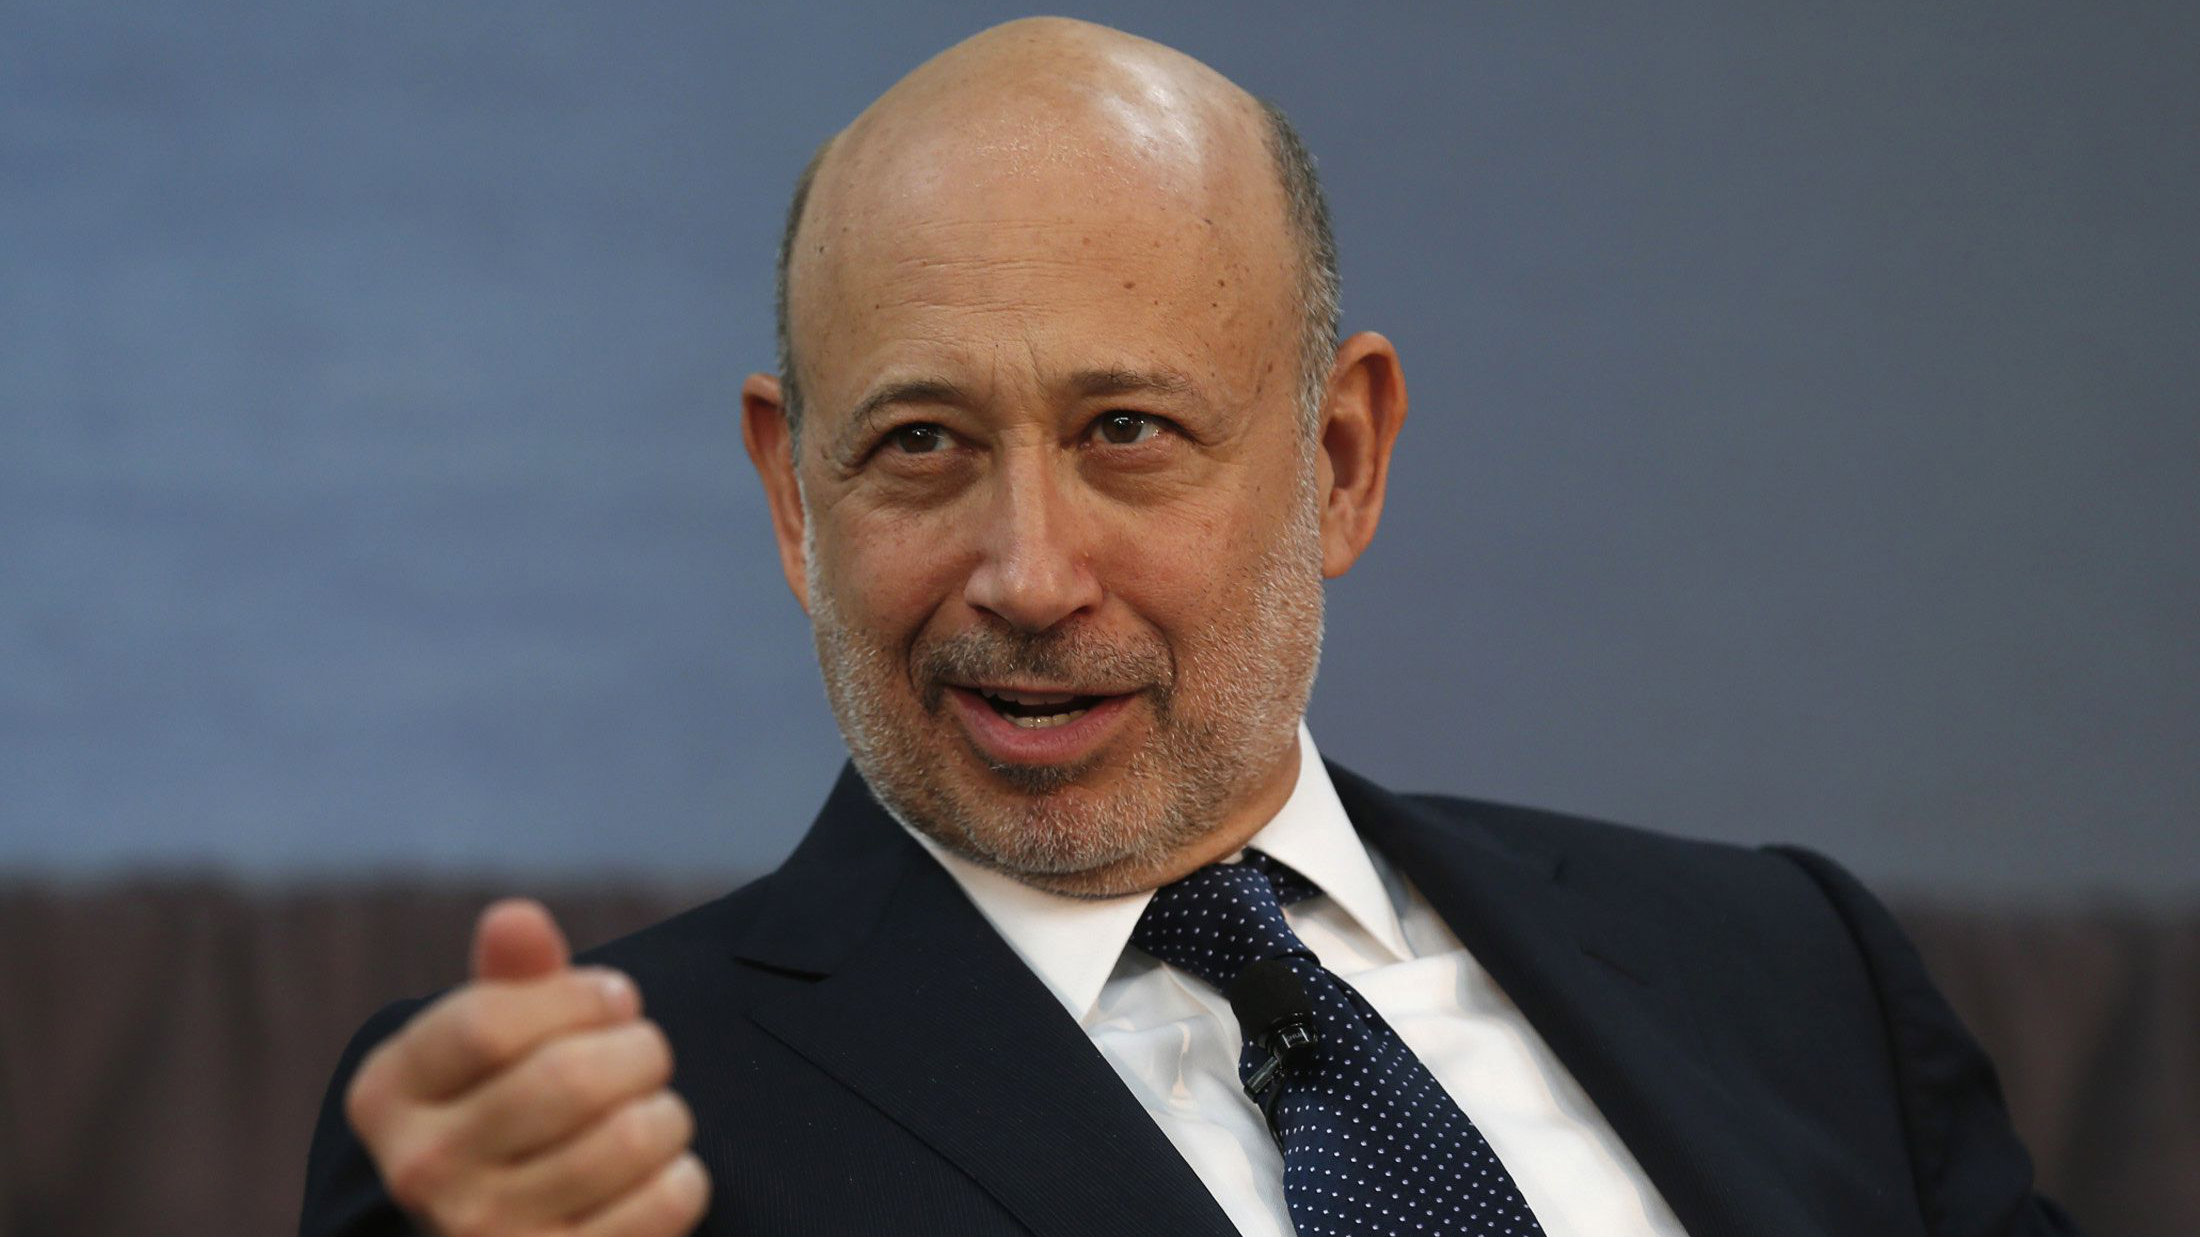 Goldman Sachs CEO Lloyd Blankfein takes part in a panel discussion following a news conference announcing a $20 million partnership to bring Goldman Sachs' 10,000 Small Businesses initiative to the city of Detroit, Michigan November 26, 2013. REUTERS/Rebecca Cook (UNITED STATES - Tags: BUSINESS EMPLOYMENT)